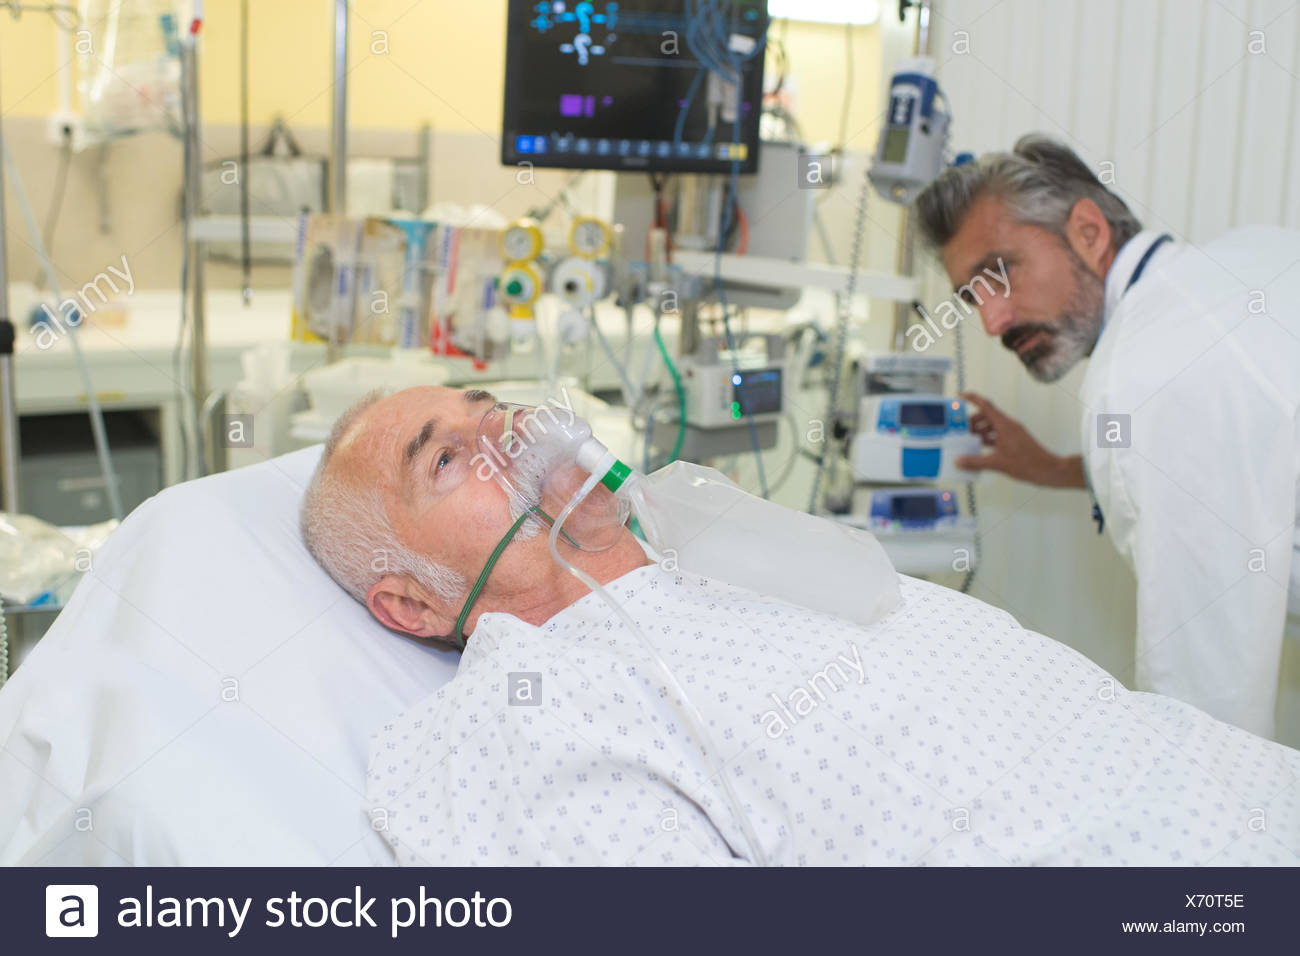 Attrayant Man In Hospital Bed Oxygen Mask Stock Photos U0026 Man In ...